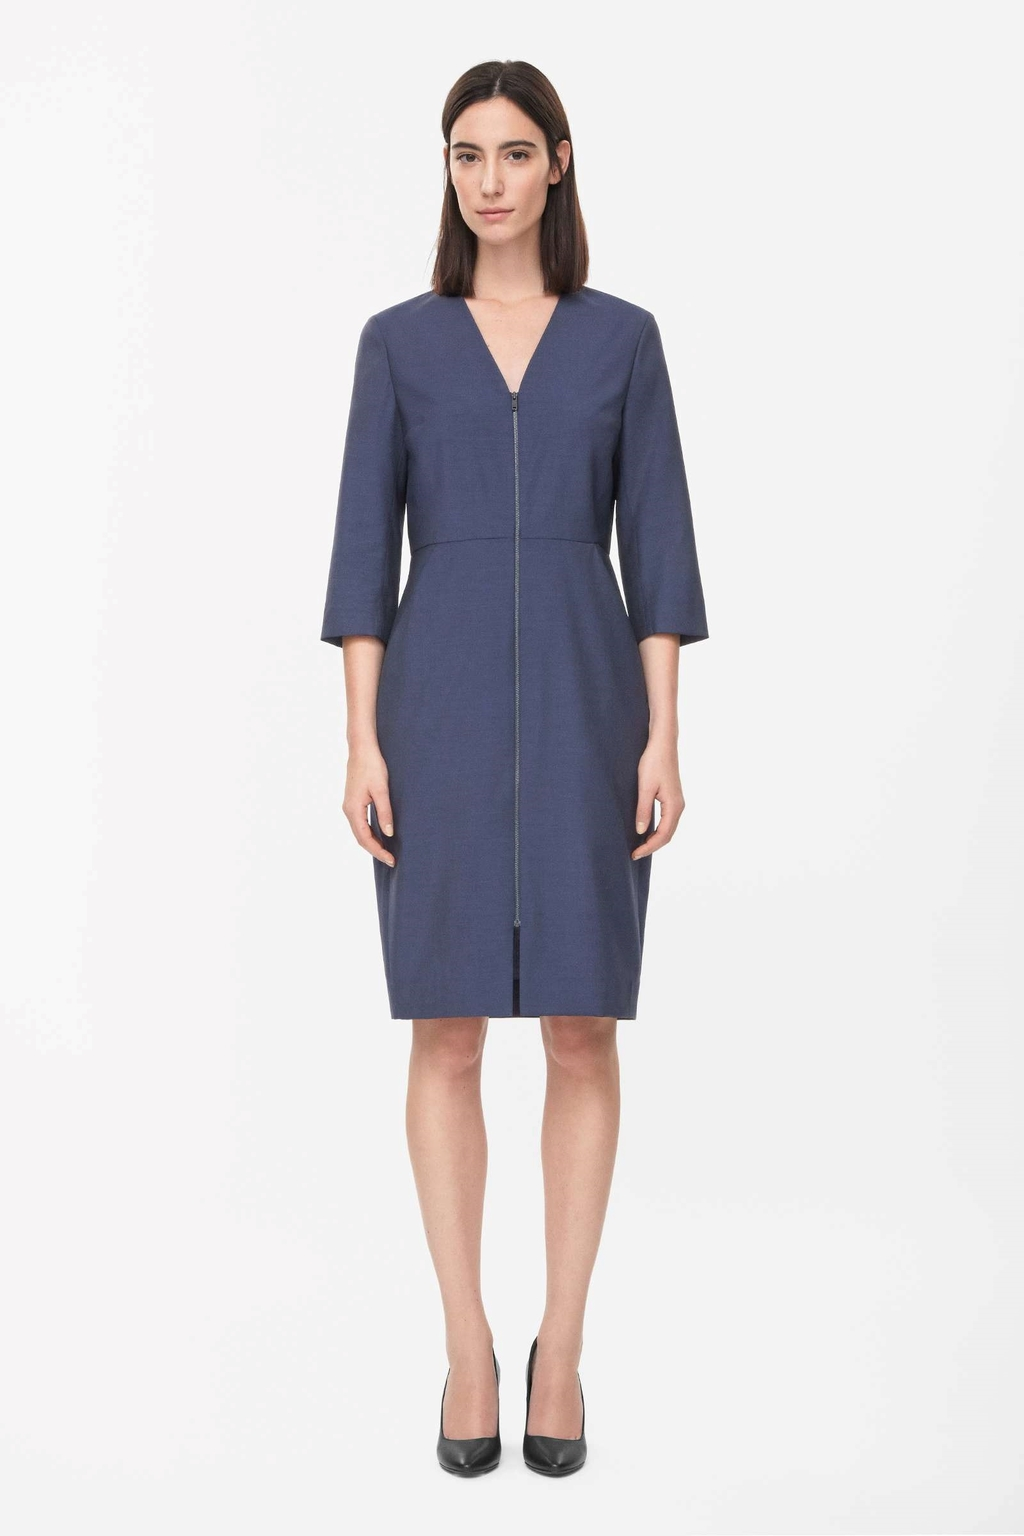 Zip Up Wool Dress - style: shift; neckline: v-neck; fit: tailored/fitted; pattern: plain; predominant colour: navy; occasions: casual, work, creative work; length: just above the knee; fibres: wool - 100%; sleeve length: 3/4 length; sleeve style: standard; texture group: woven light midweight; embellishment: zips; season: s/s 2015; wardrobe: highlight